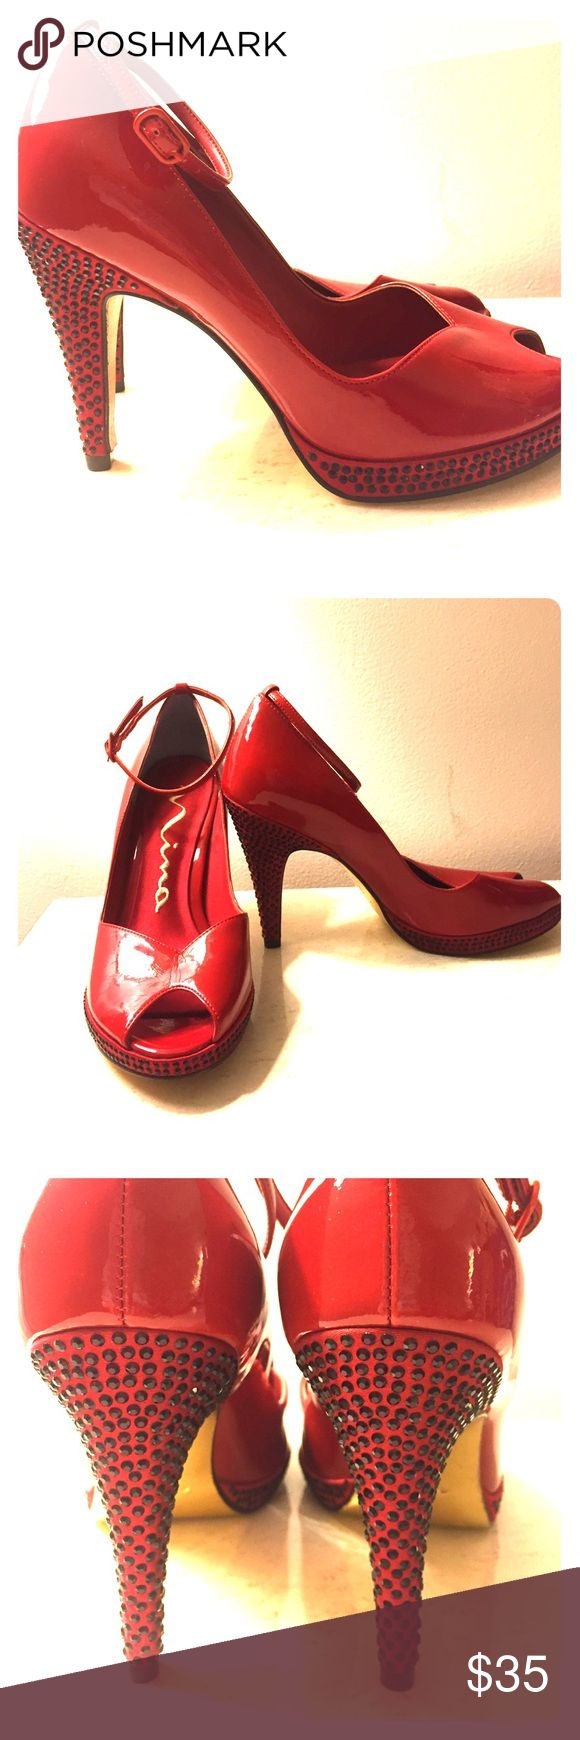 Nina red rhinestone pumps Nina red rhinestone pumps. Patent leather with black rhinestones. Pretty gold sole. Do not believe these were ever worn. Beautiful shoes! Nina Shoes Heels